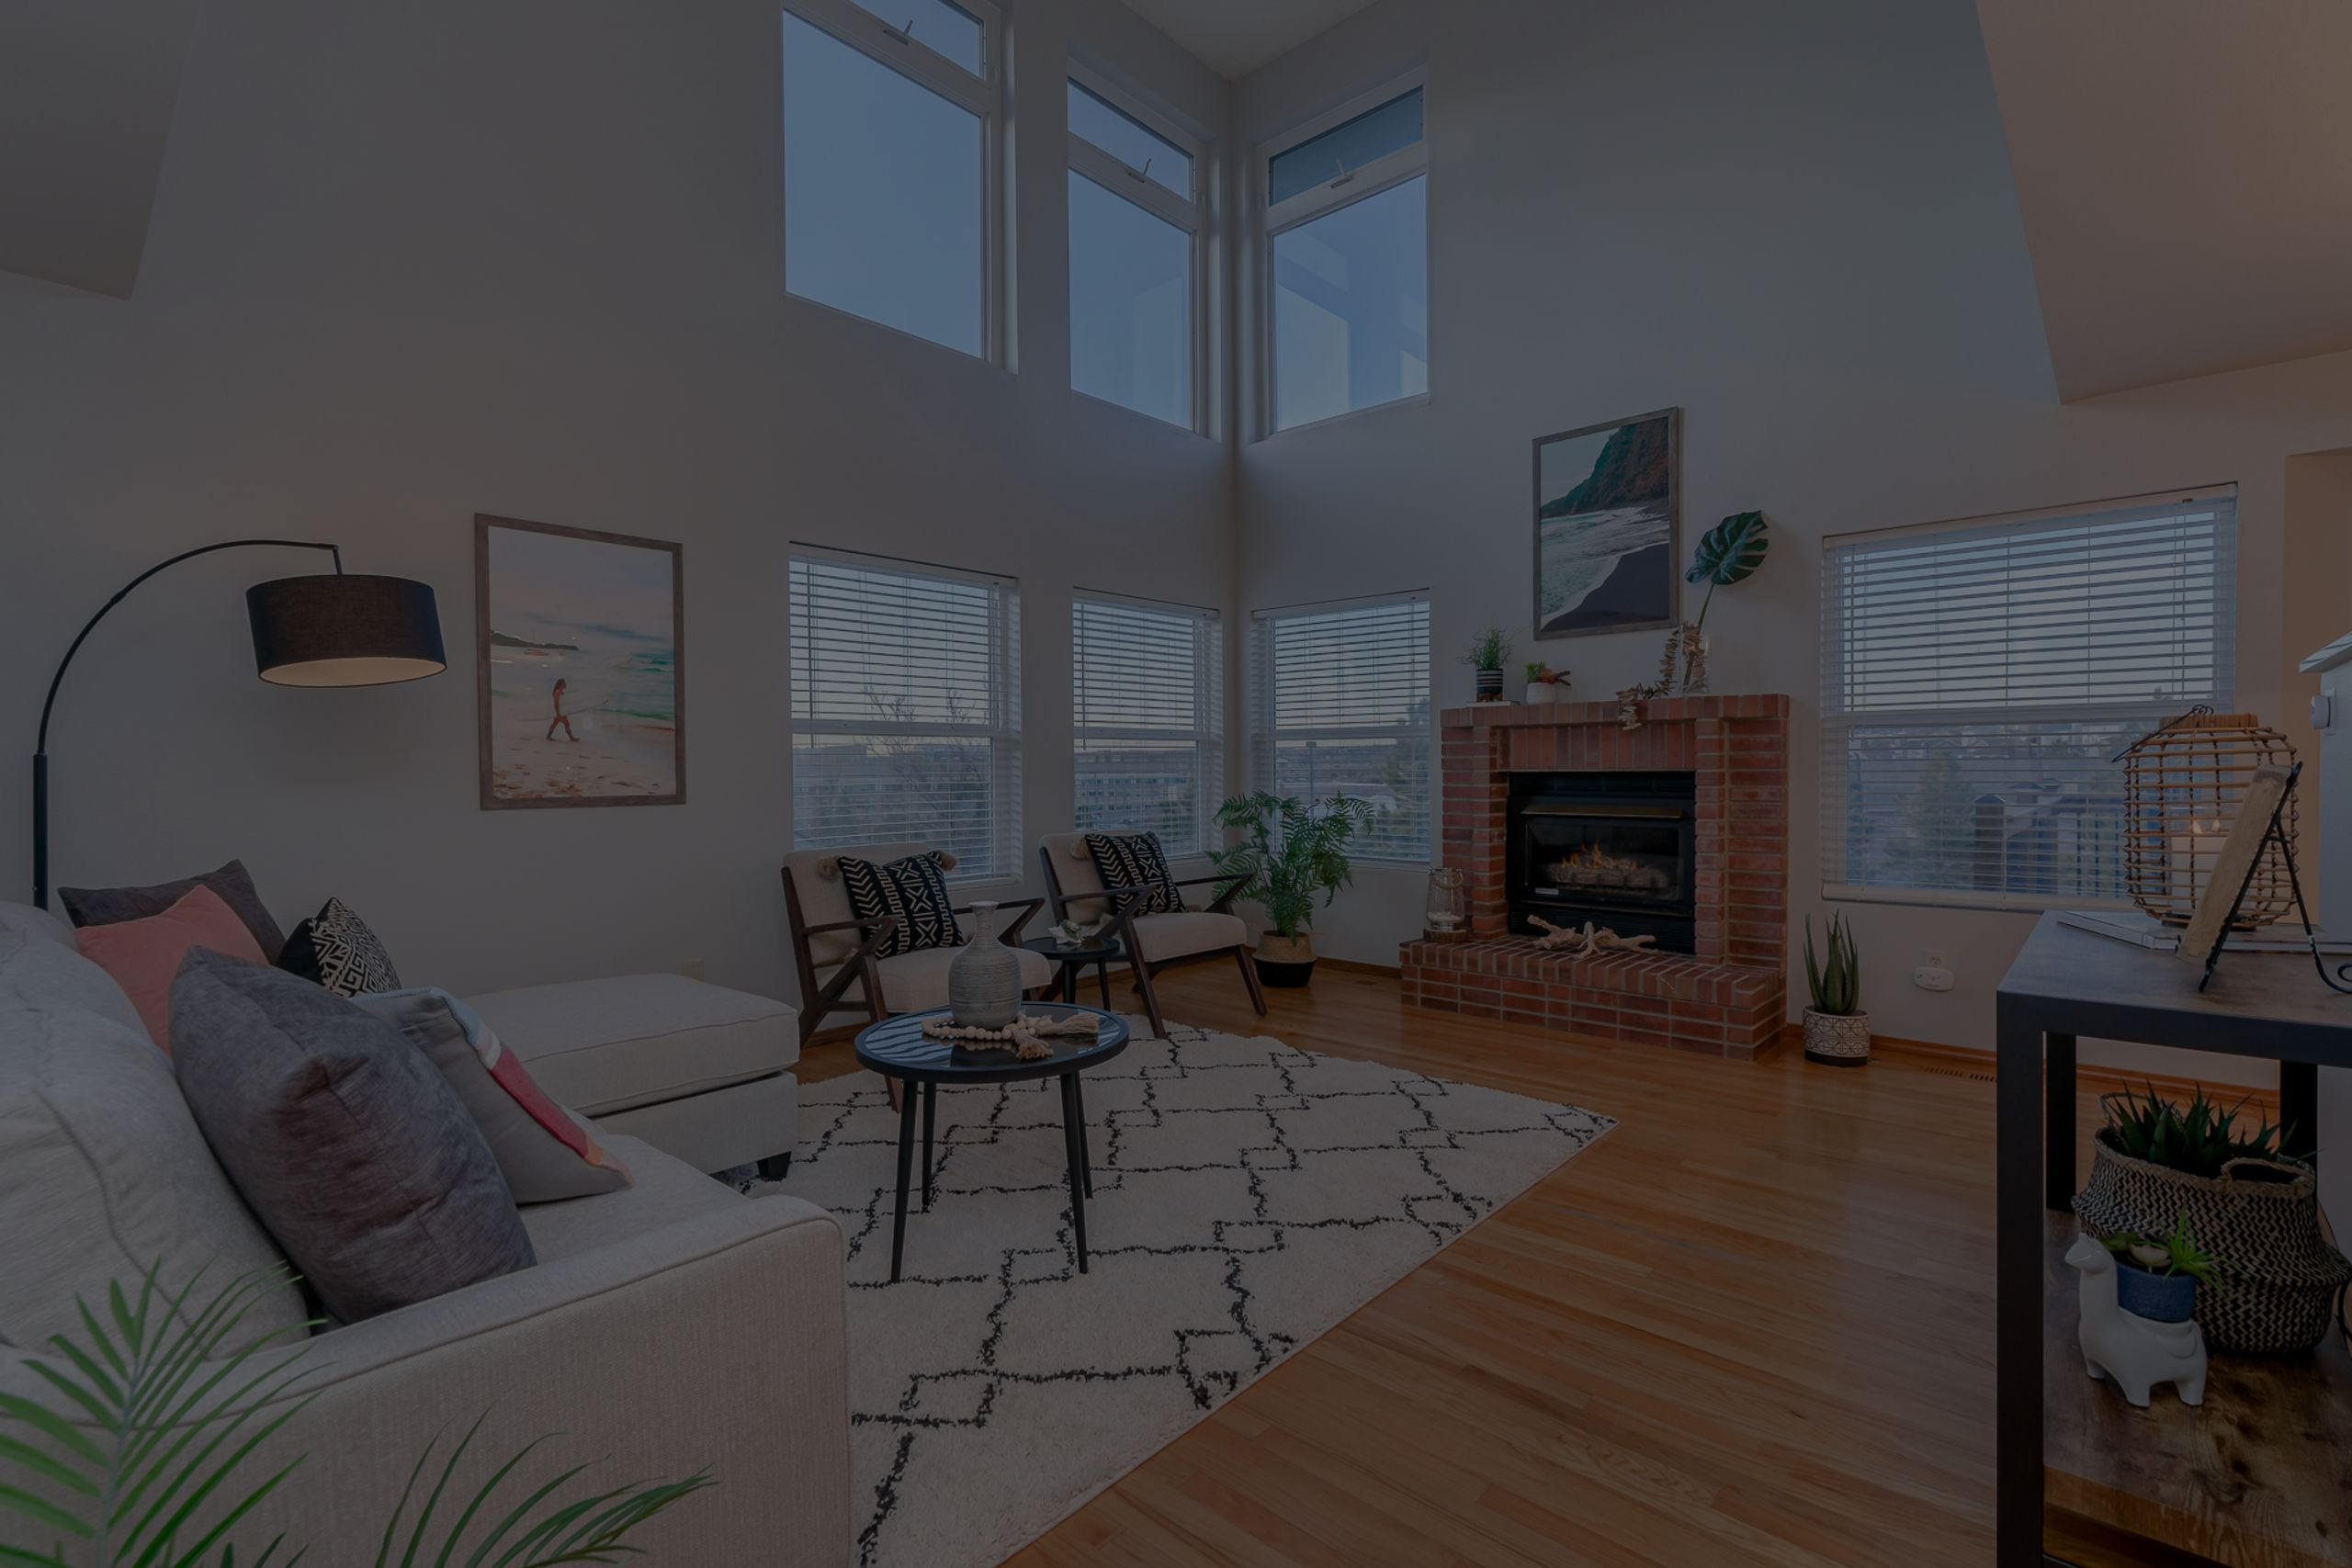 Staging to sell a lifestyle